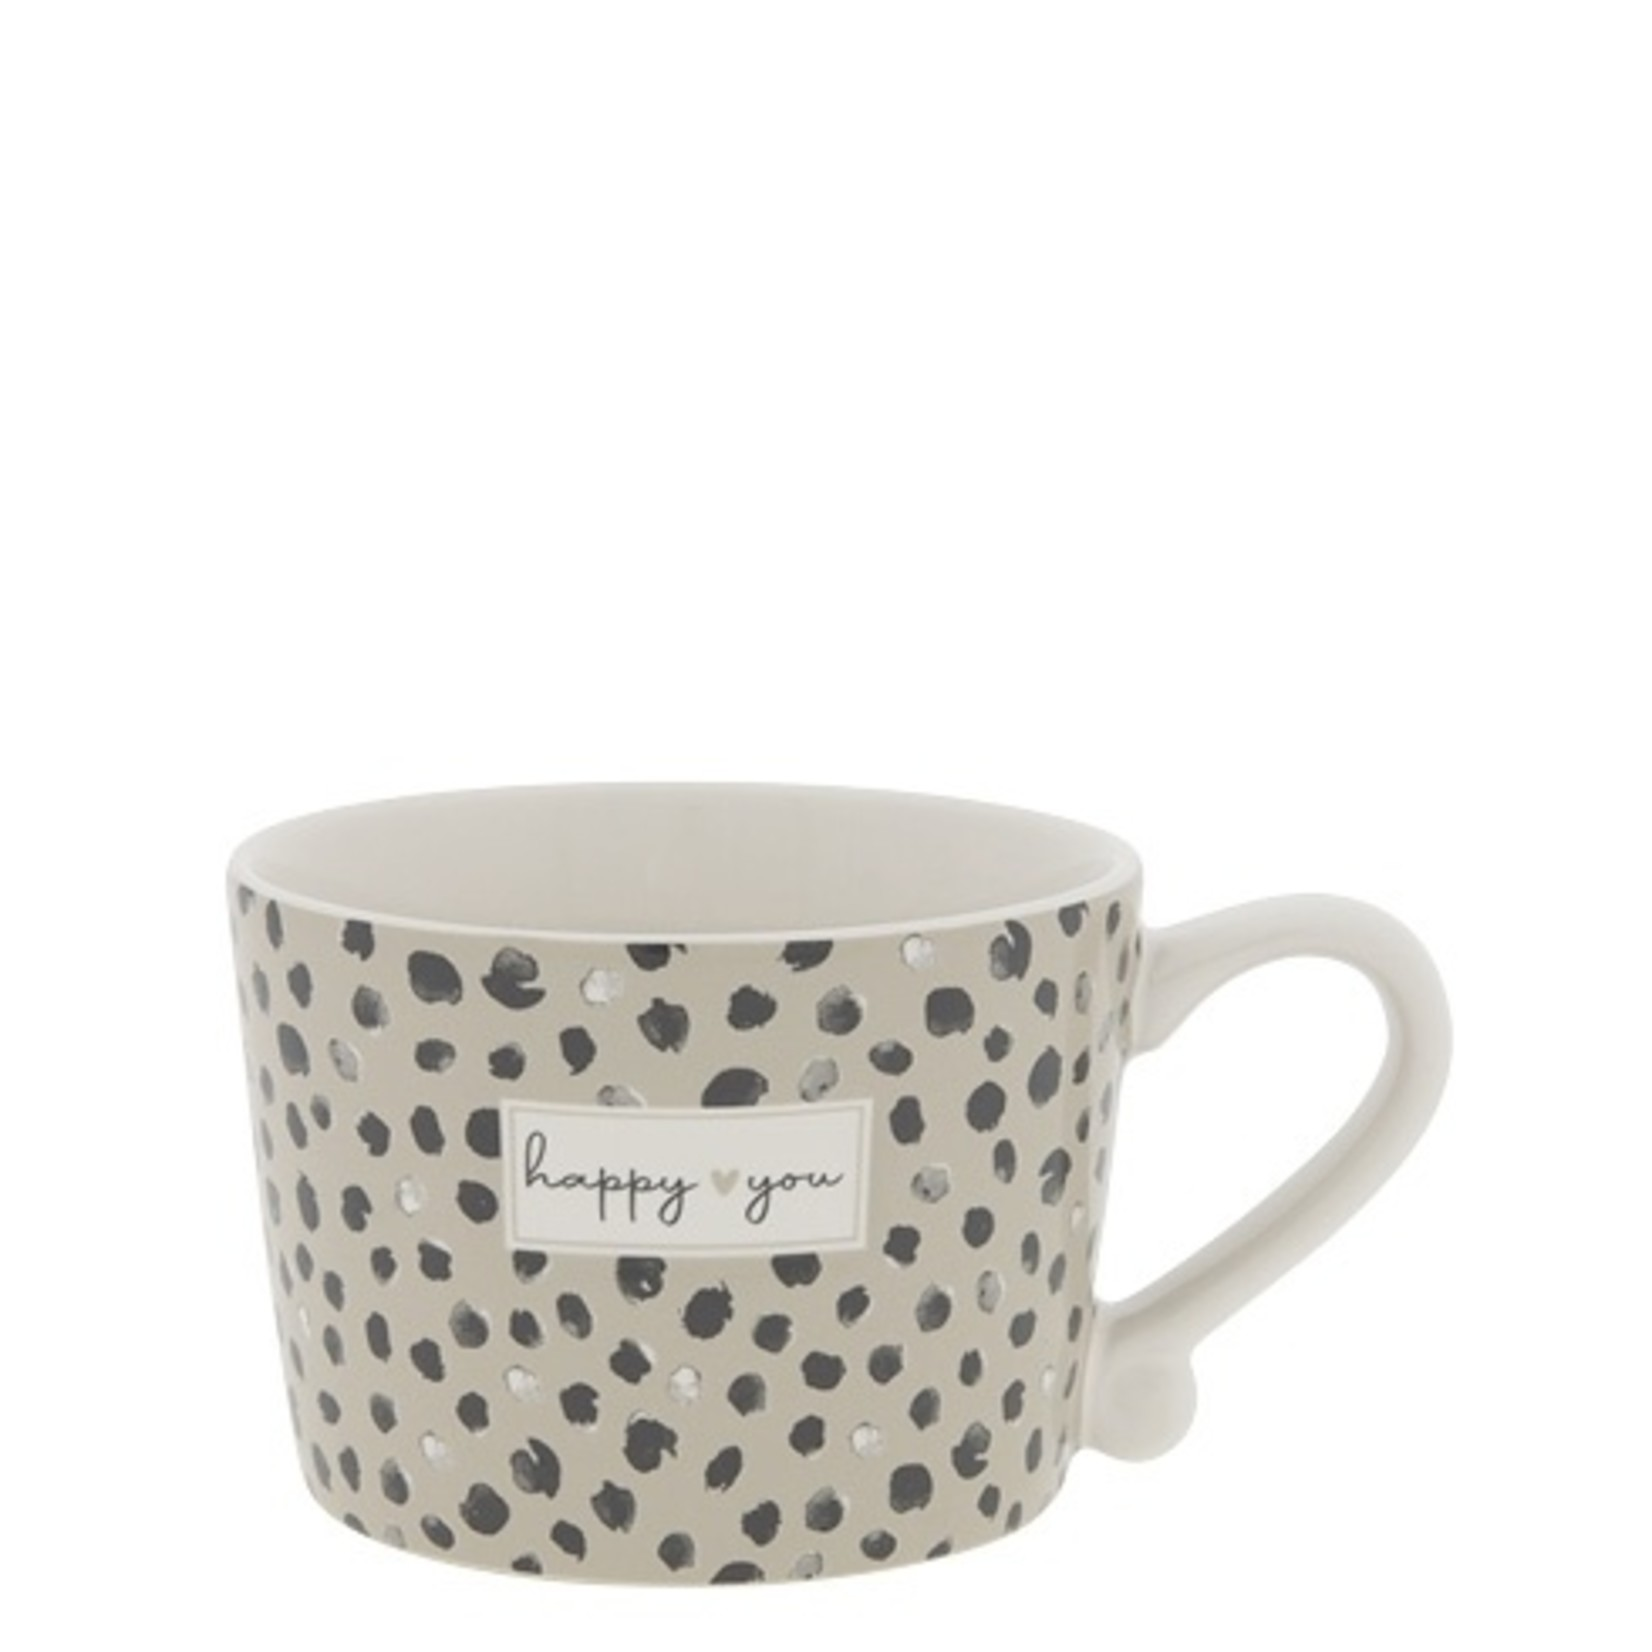 Bastion Collections Cup White sm / Confetti Happy You